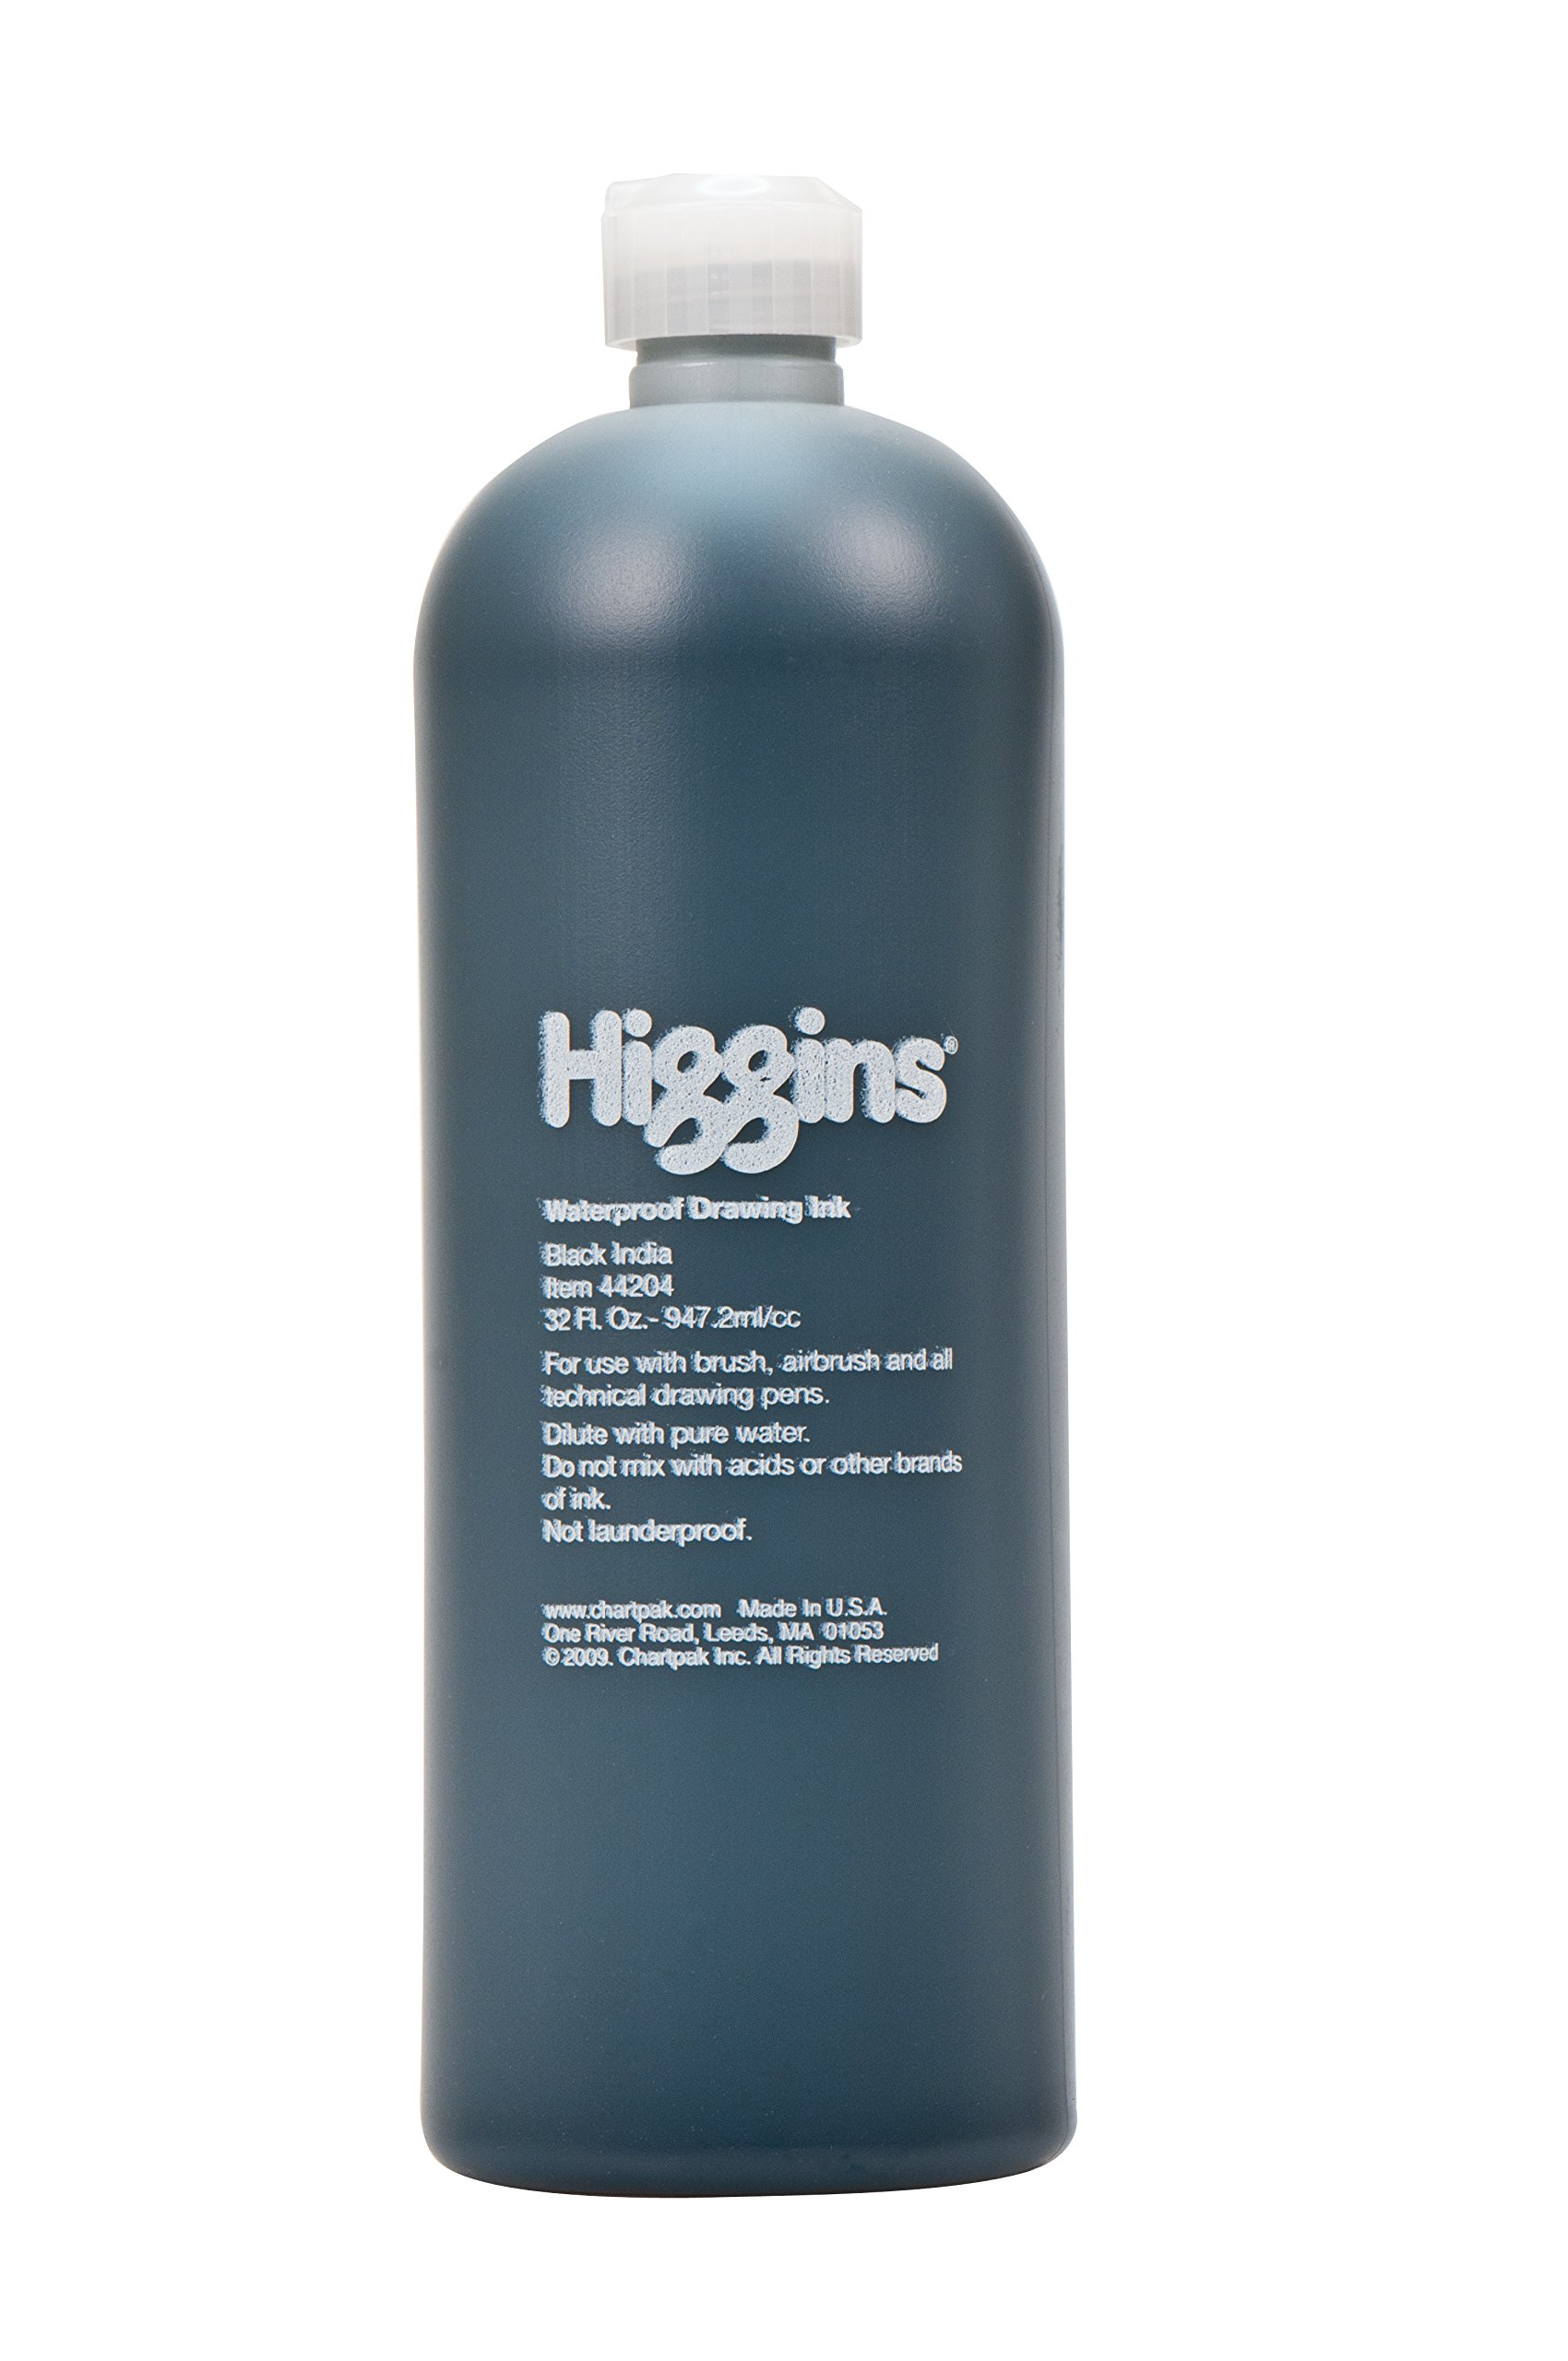 Higgins Black India Pigmented Drawing Ink, 32 Ounce Bottle (44204) by Higgins (Image #1)